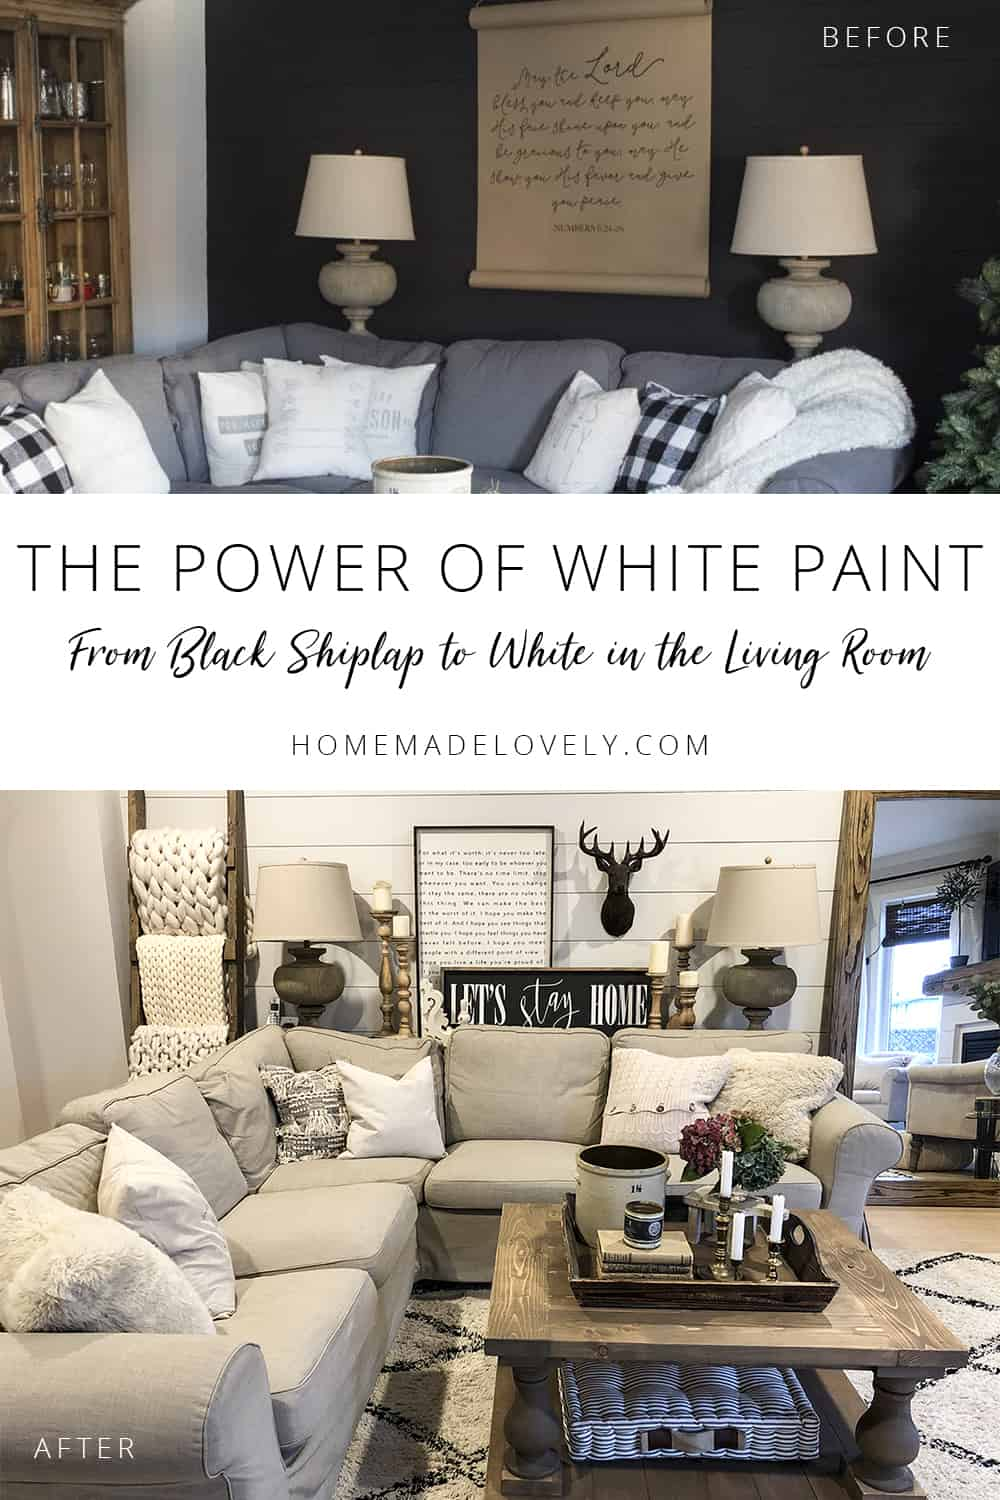 The Power of White Paint